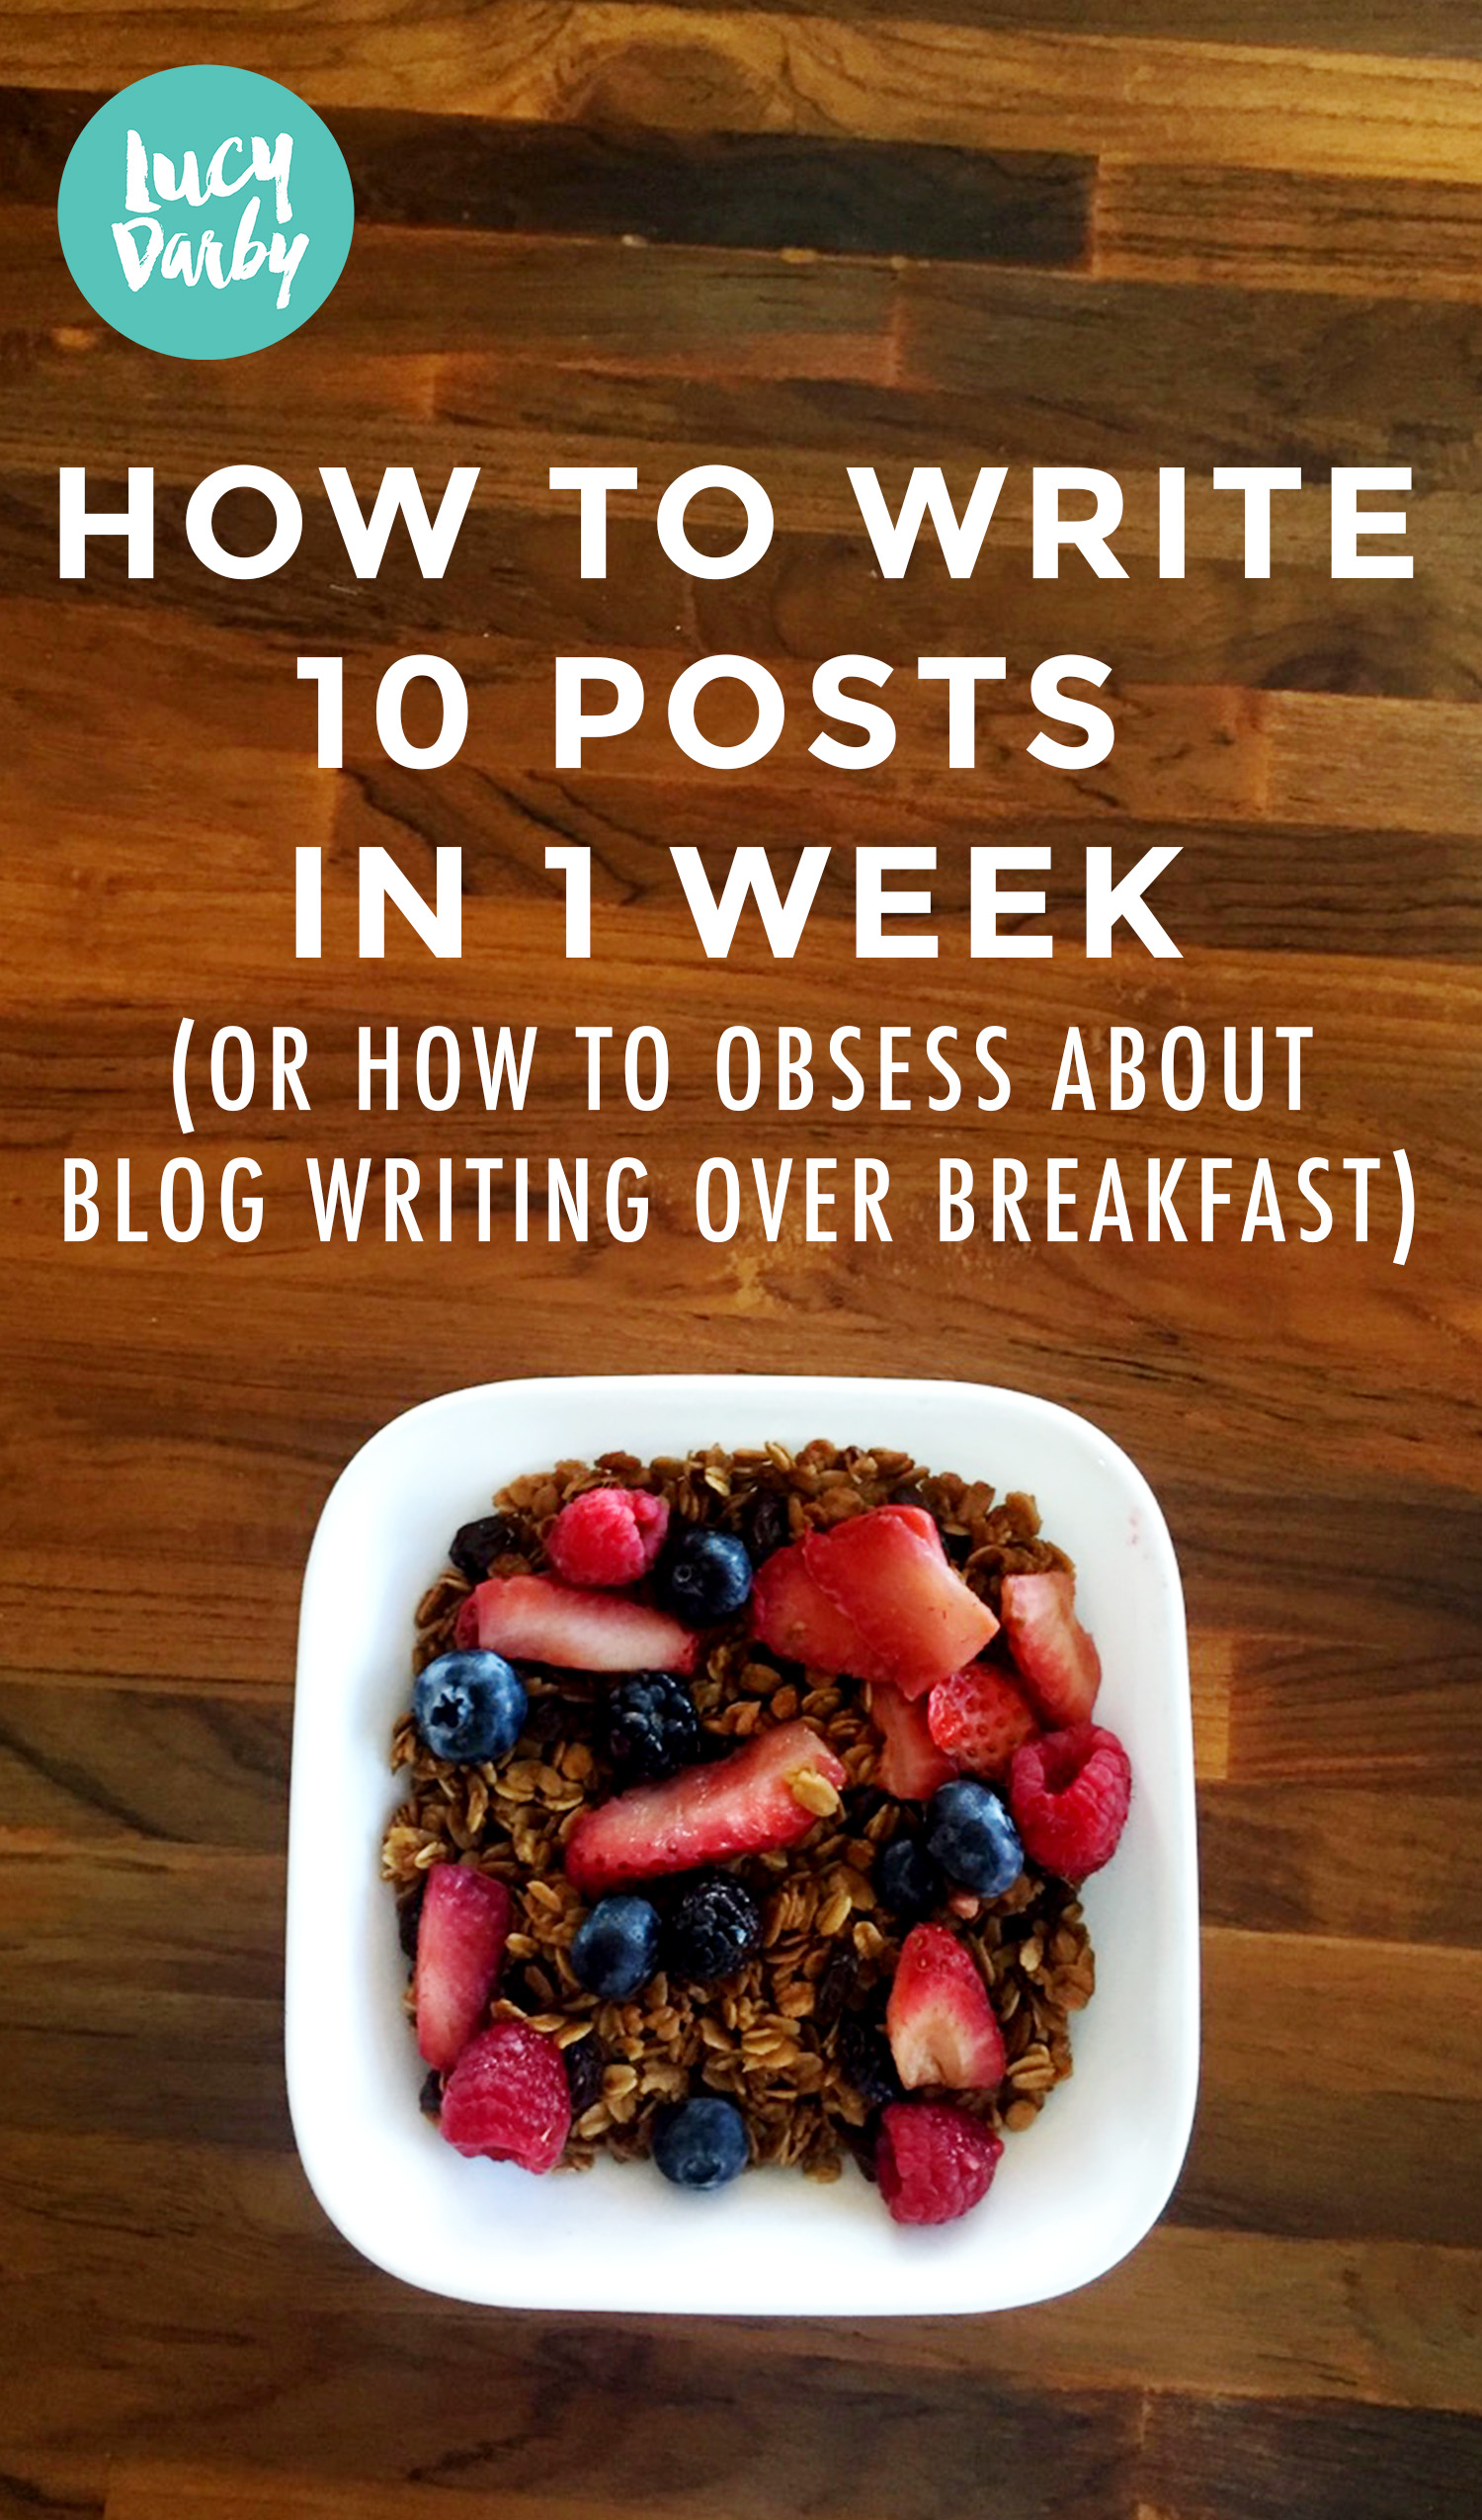 How To Write 10 Blog Posts in 1 Week